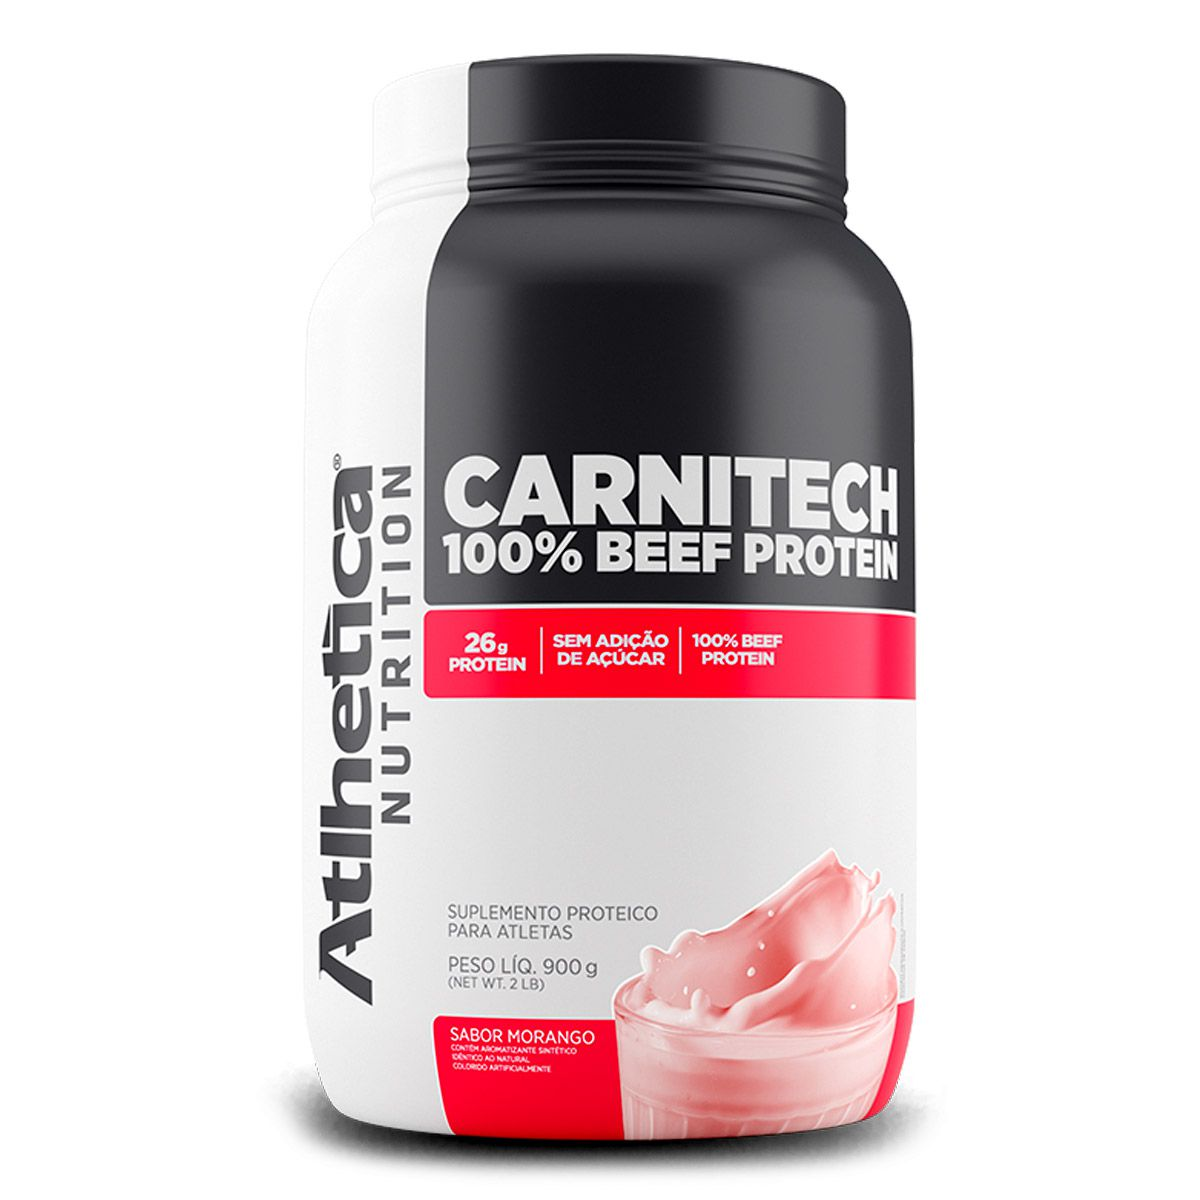 Carnitech - Beef Protein - 900g